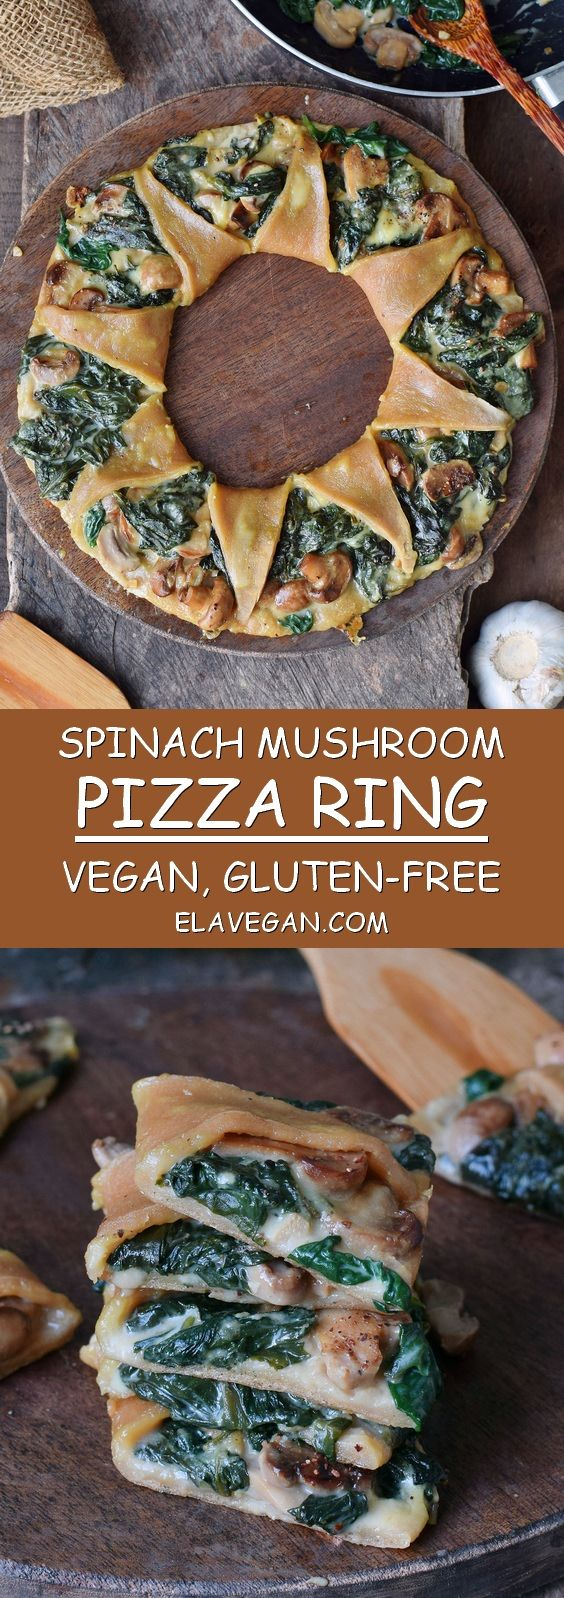 This pizza ring (also known as Pizza Corona) with spinach, mushrooms and vegan c…